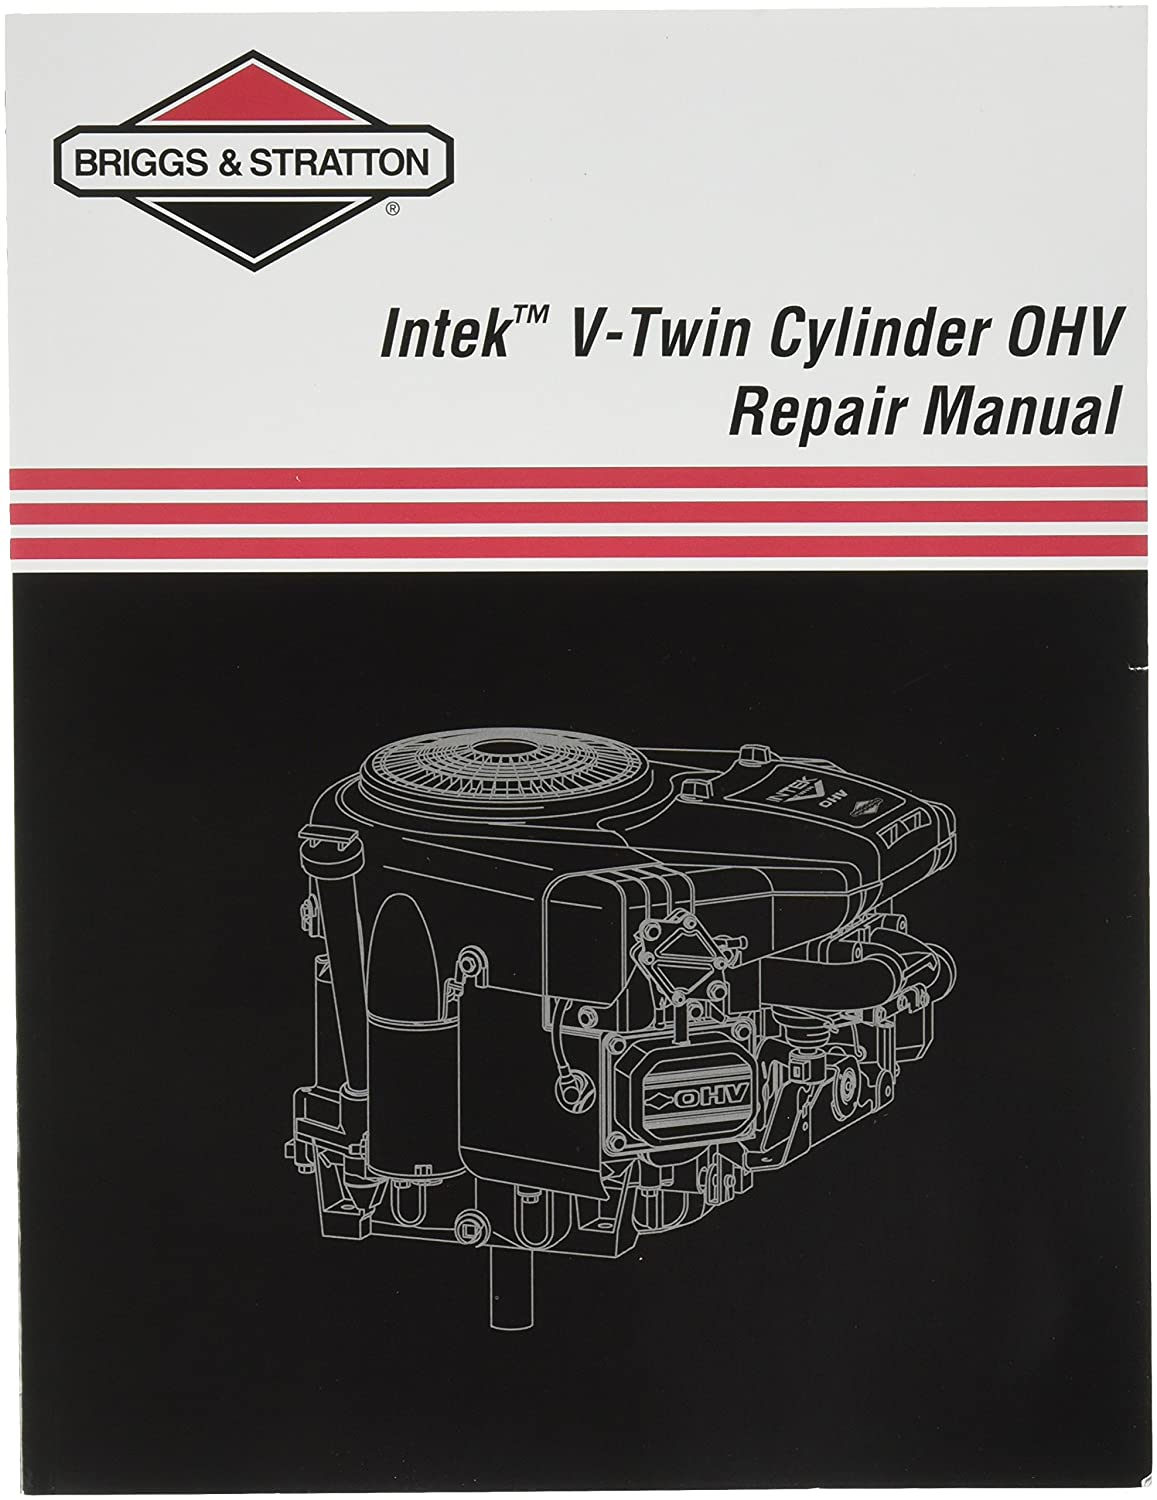 Amazon.com : Briggs & Stratton 273521 Intek V-Twin OHV Repair Manual : Four  Stroke Power Tool Engines : Garden & Outdoor